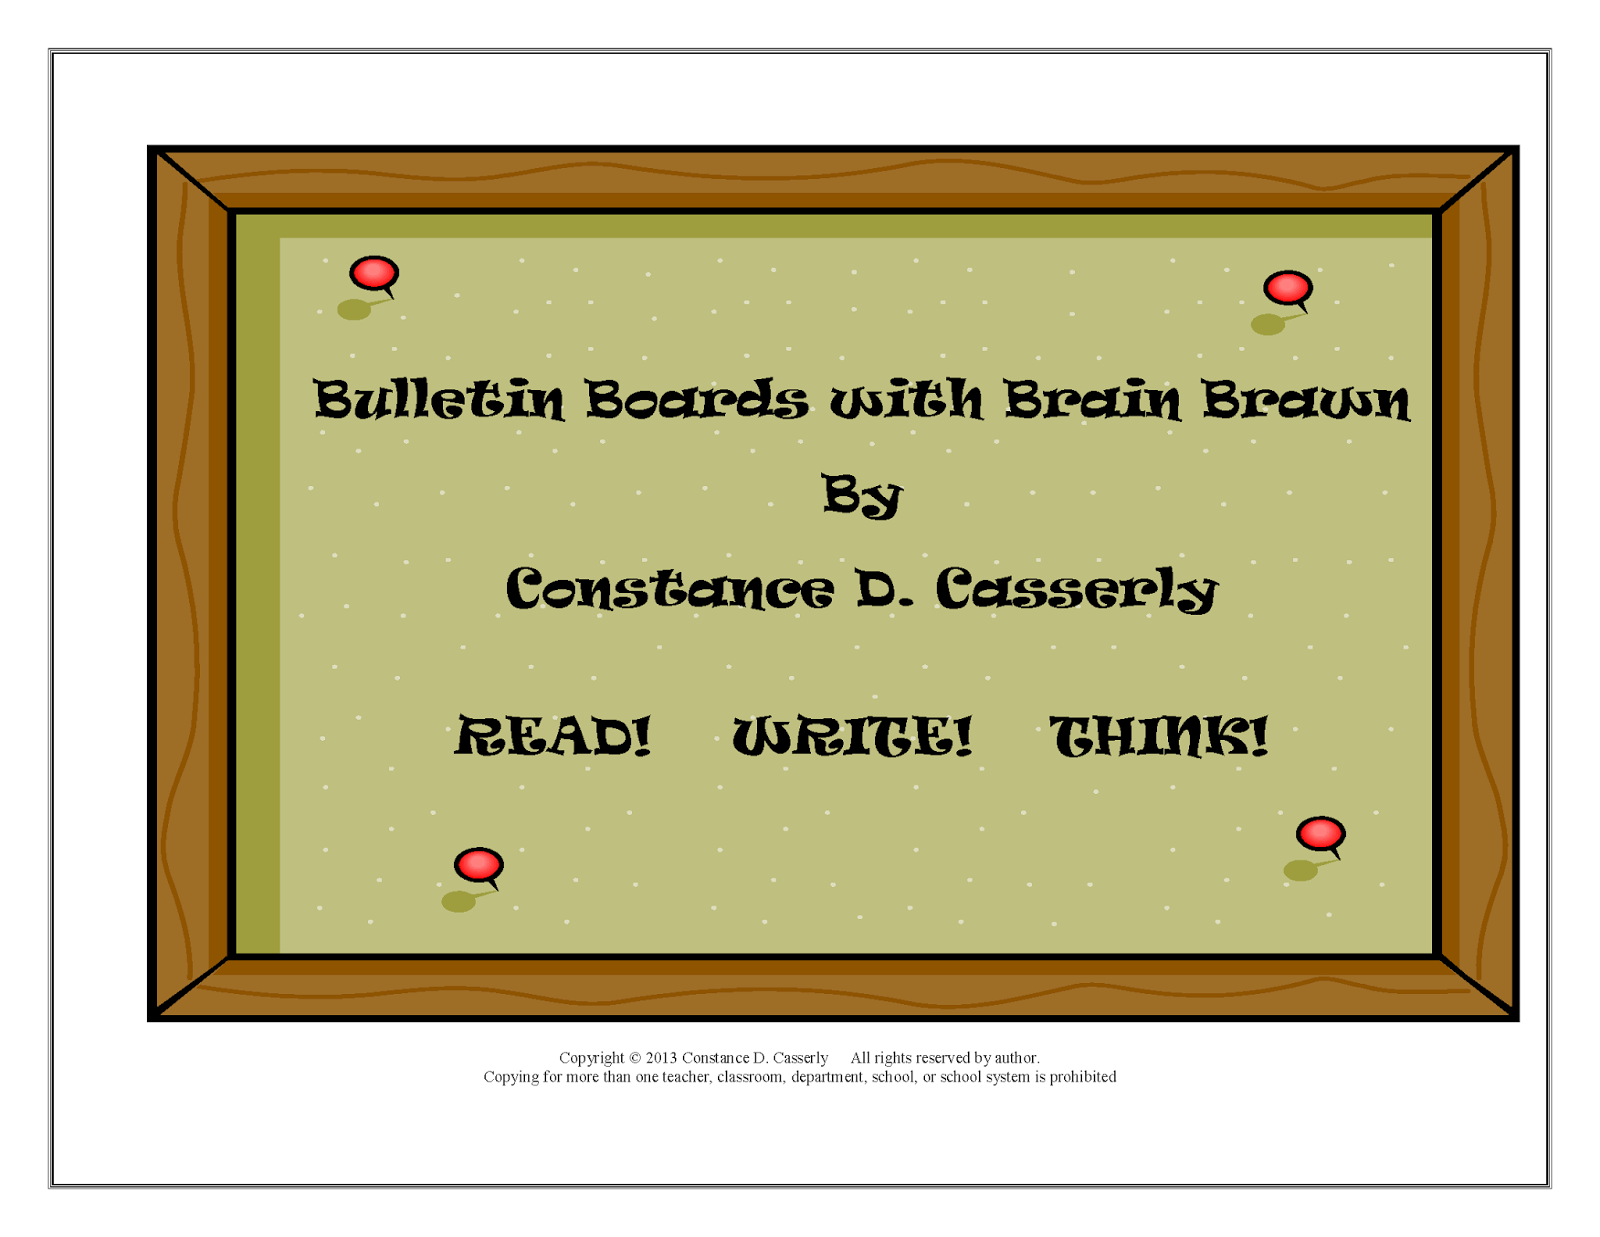 Bulletin Boards With Brain Brawn